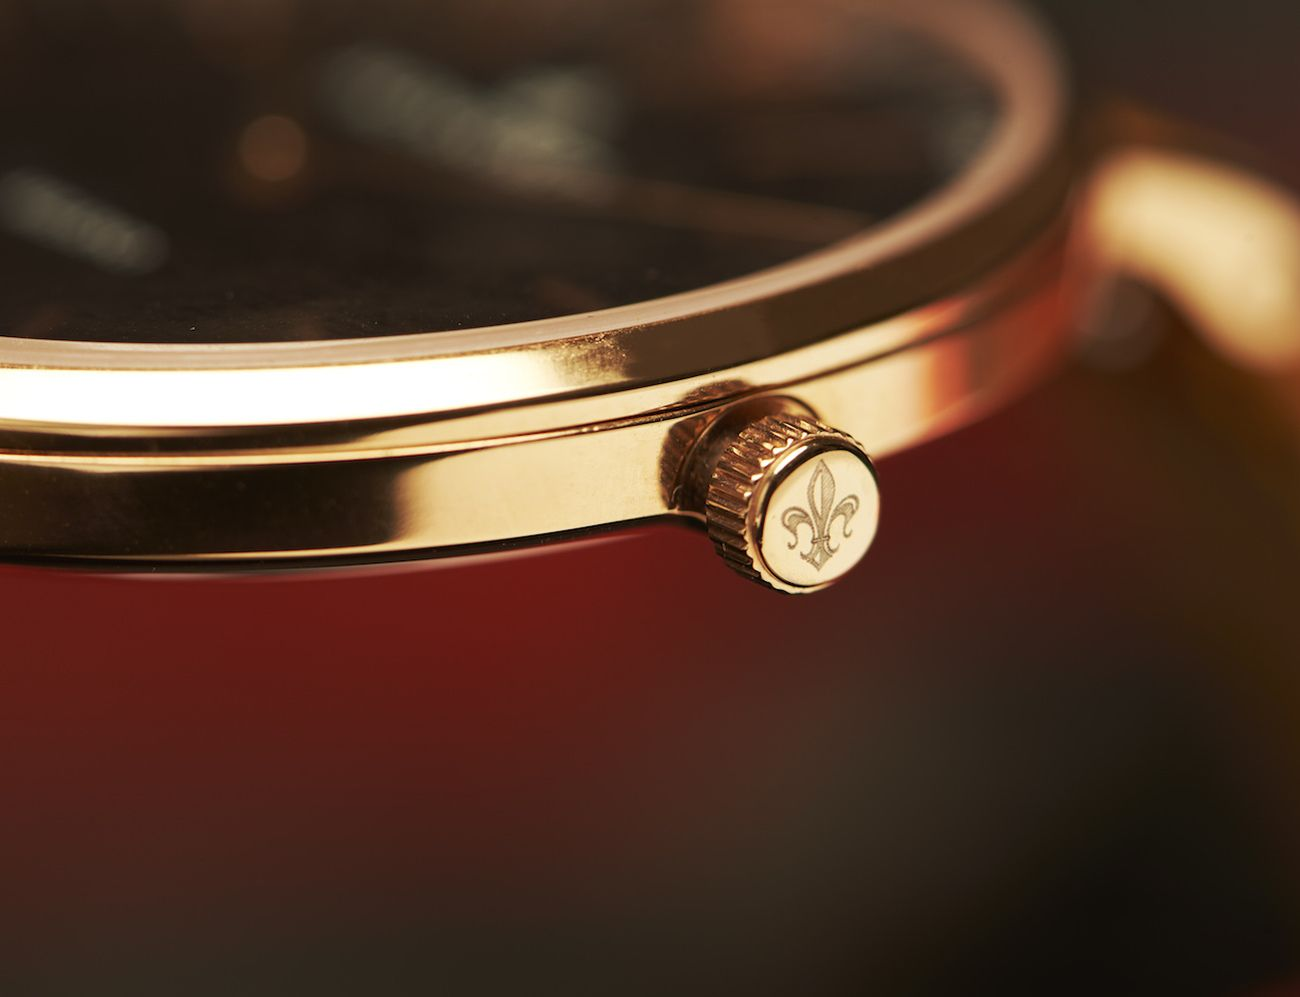 Handmade Italian Luxury Timepieces by Monforti Watches